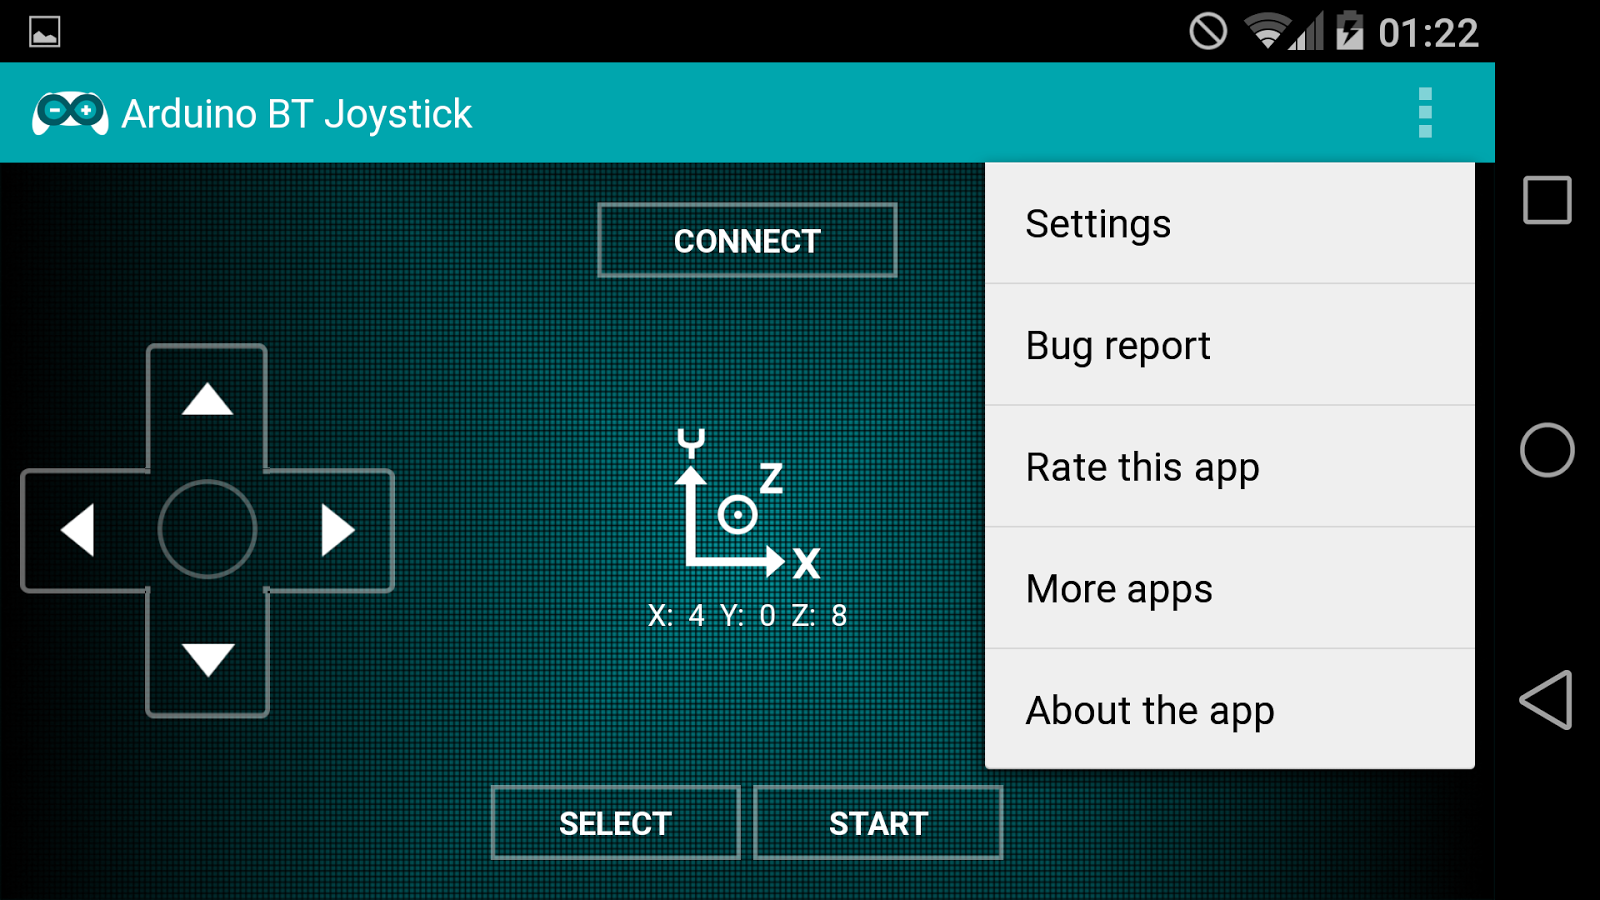 Arduino bt joystick free apk download android tools apps